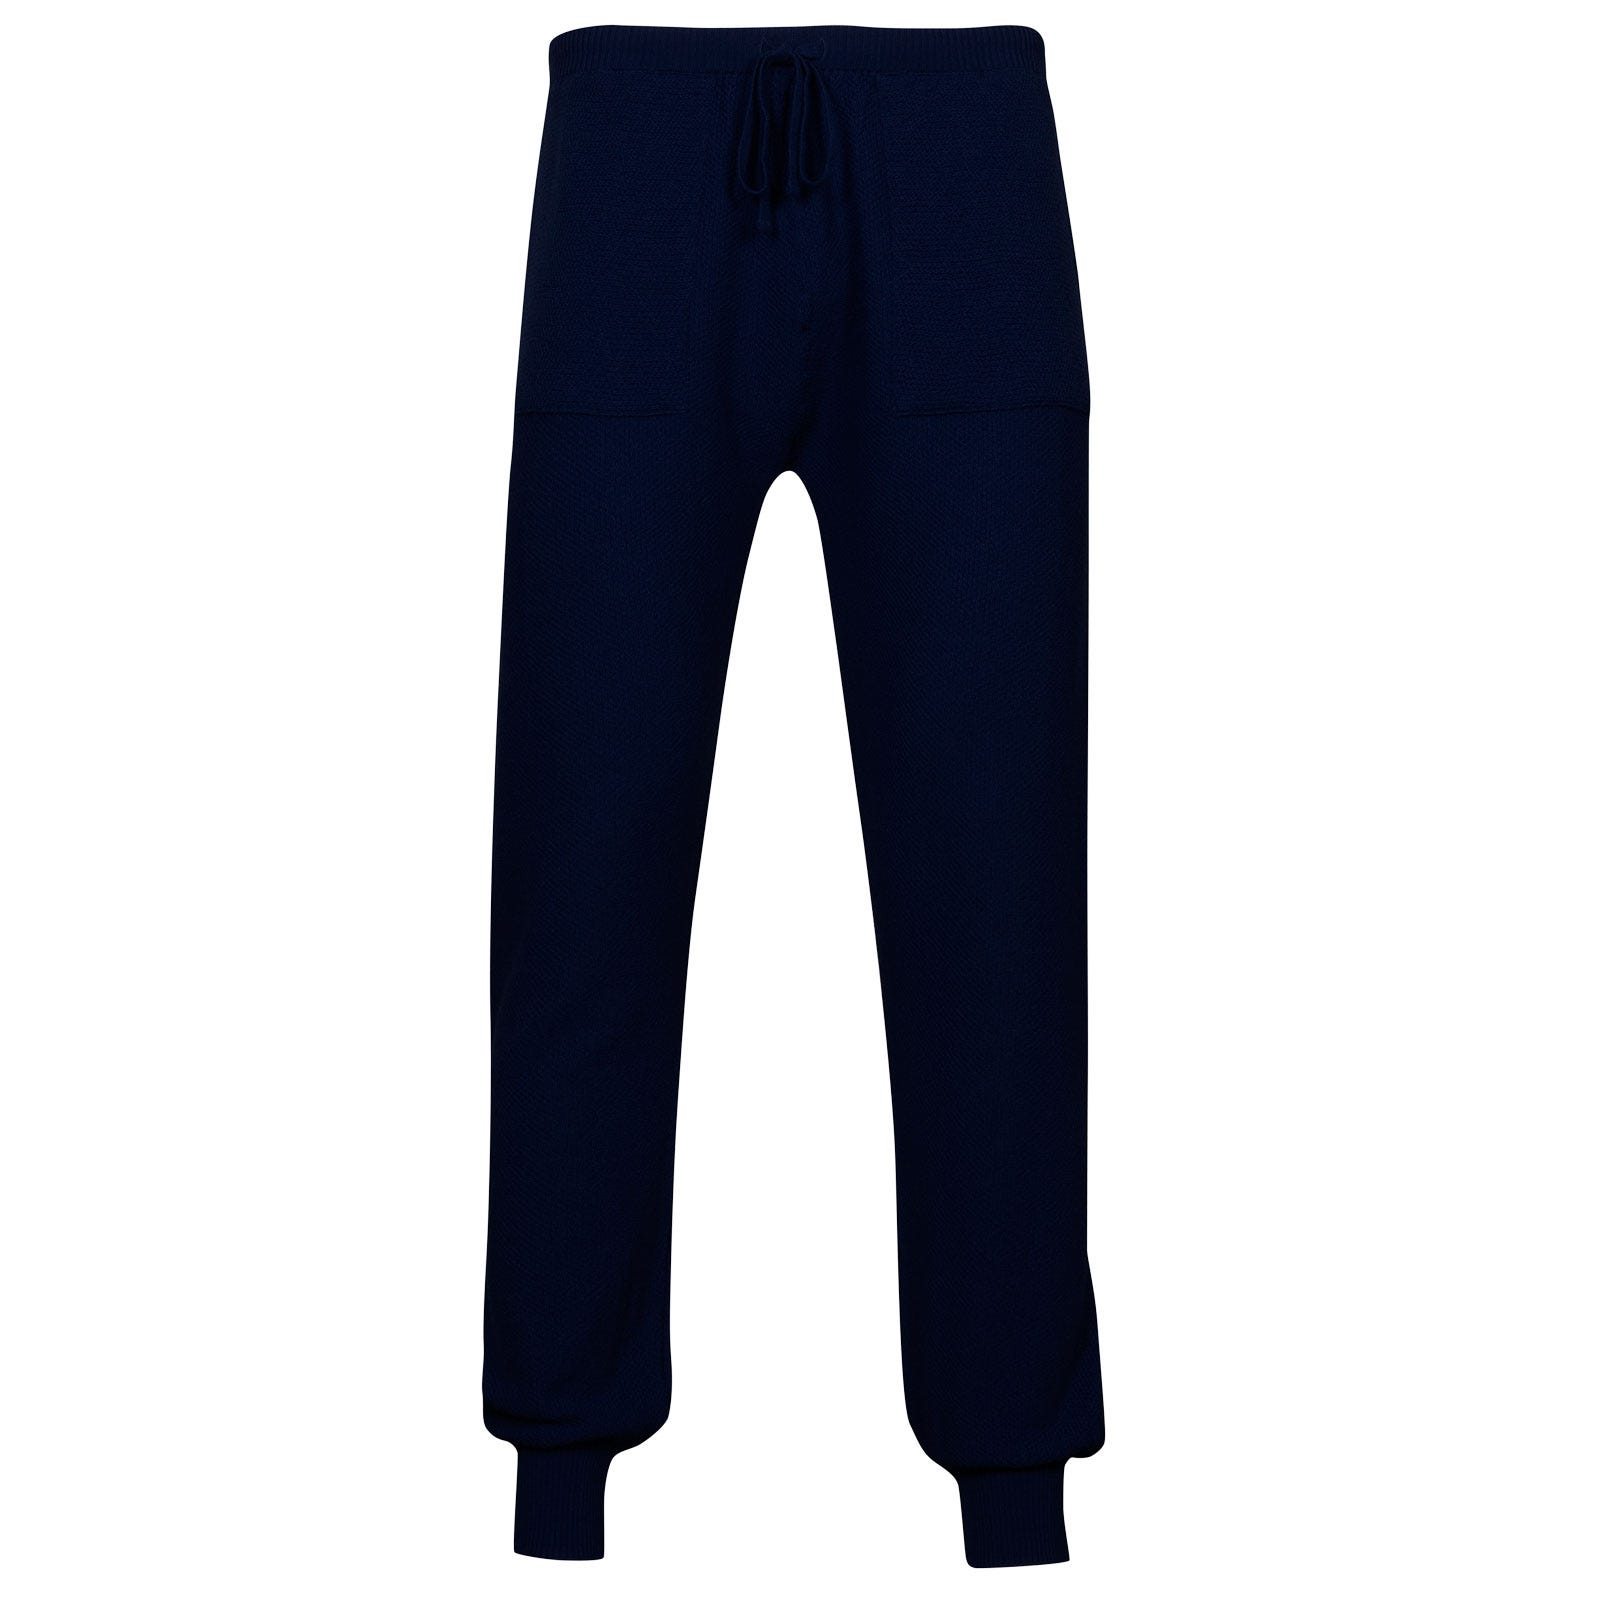 John Smedley 5Singular Merino Wool Trouser in Midnight-XS